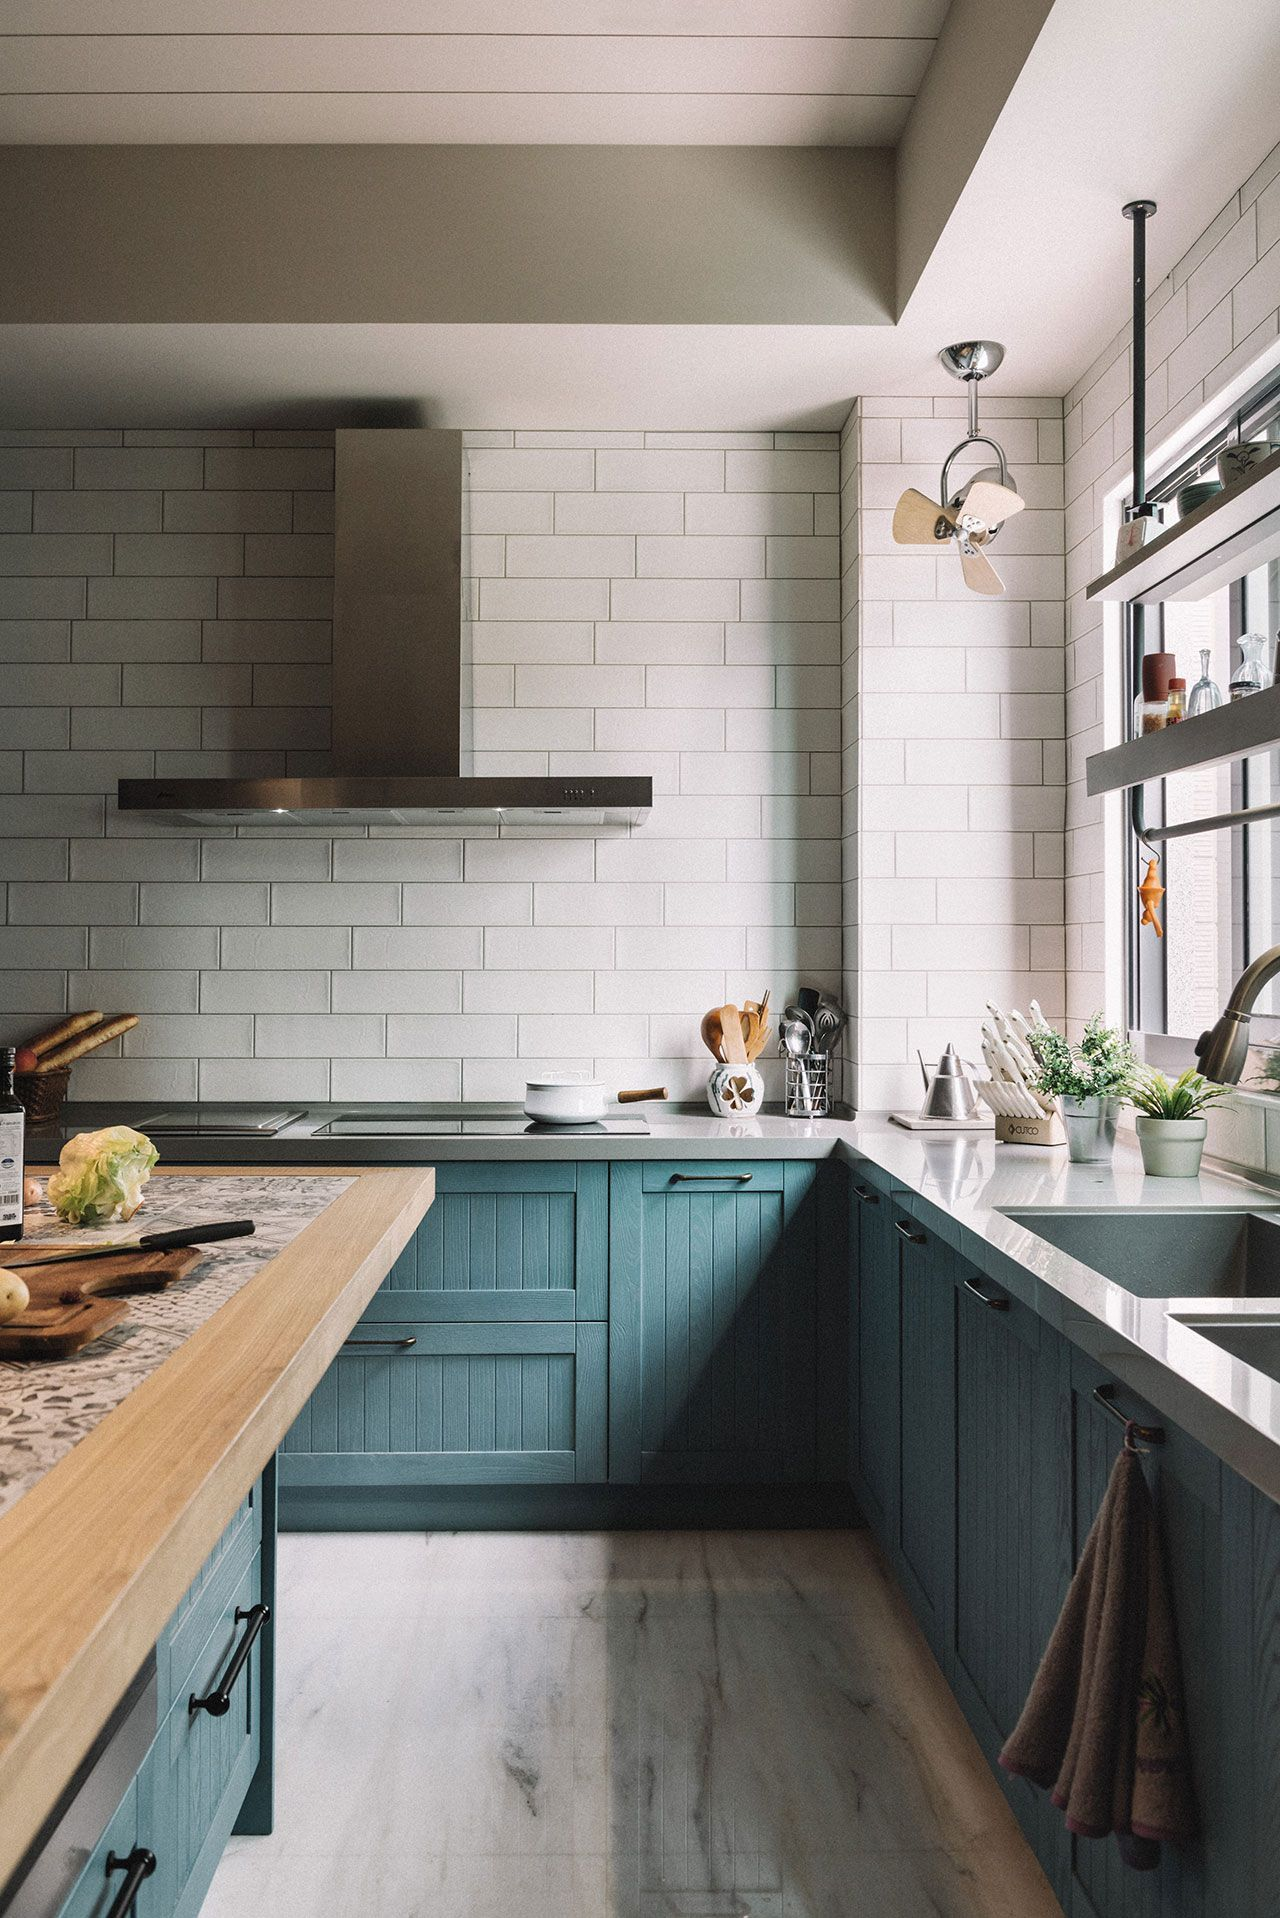 Kitchen Remodel Cost Where To Spend And How To Save On: 5 Truthful Simple Ideas: Kitchen Remodel Cost Small Spaces